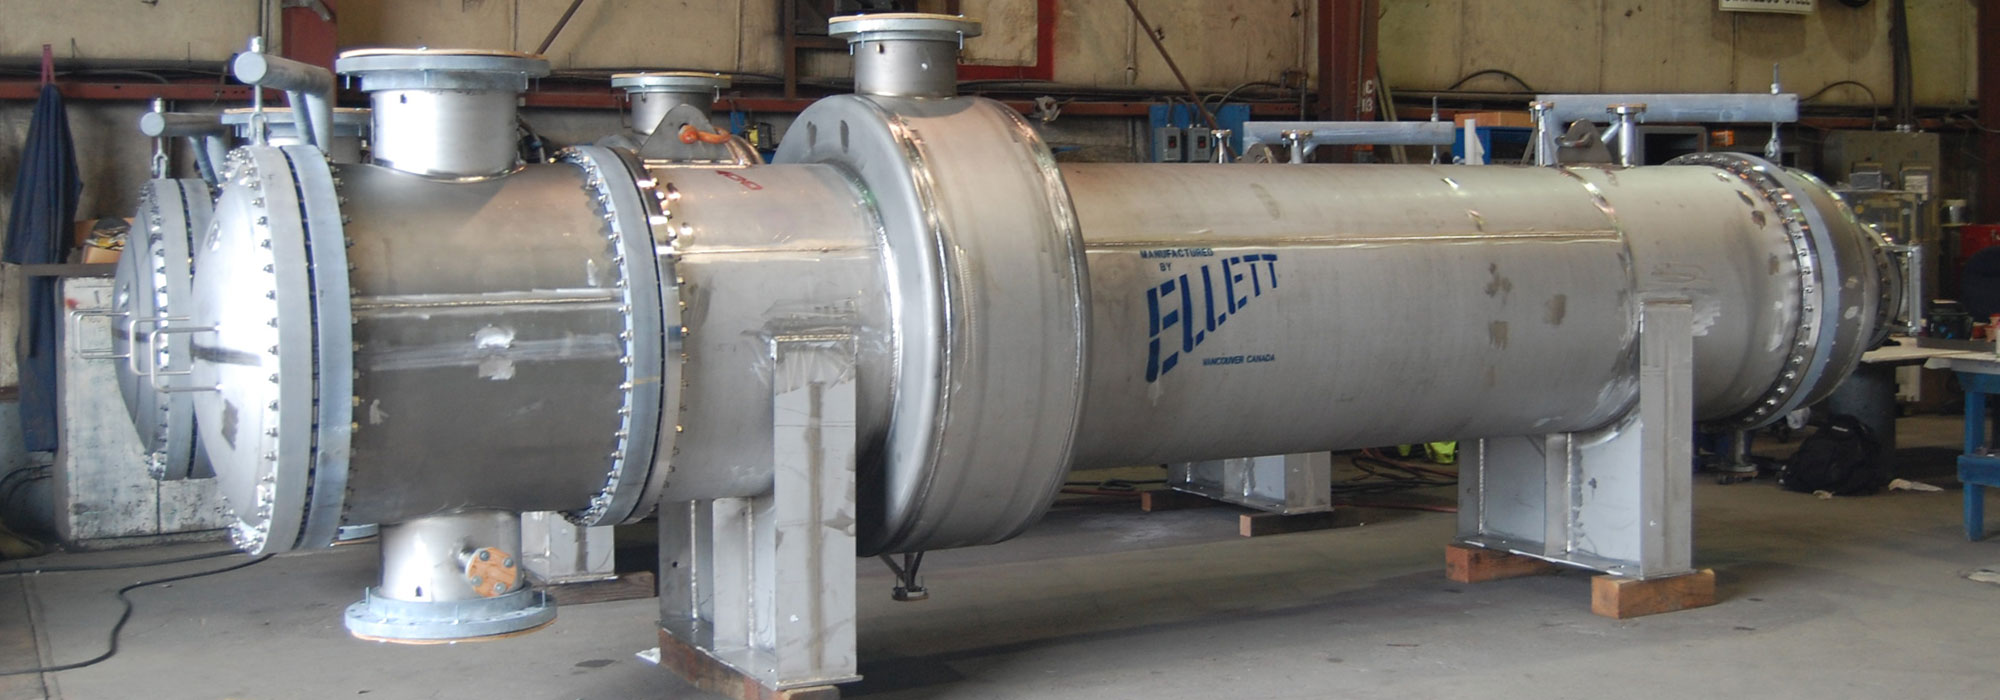 cooler condenser fabricated by Ellett Industries